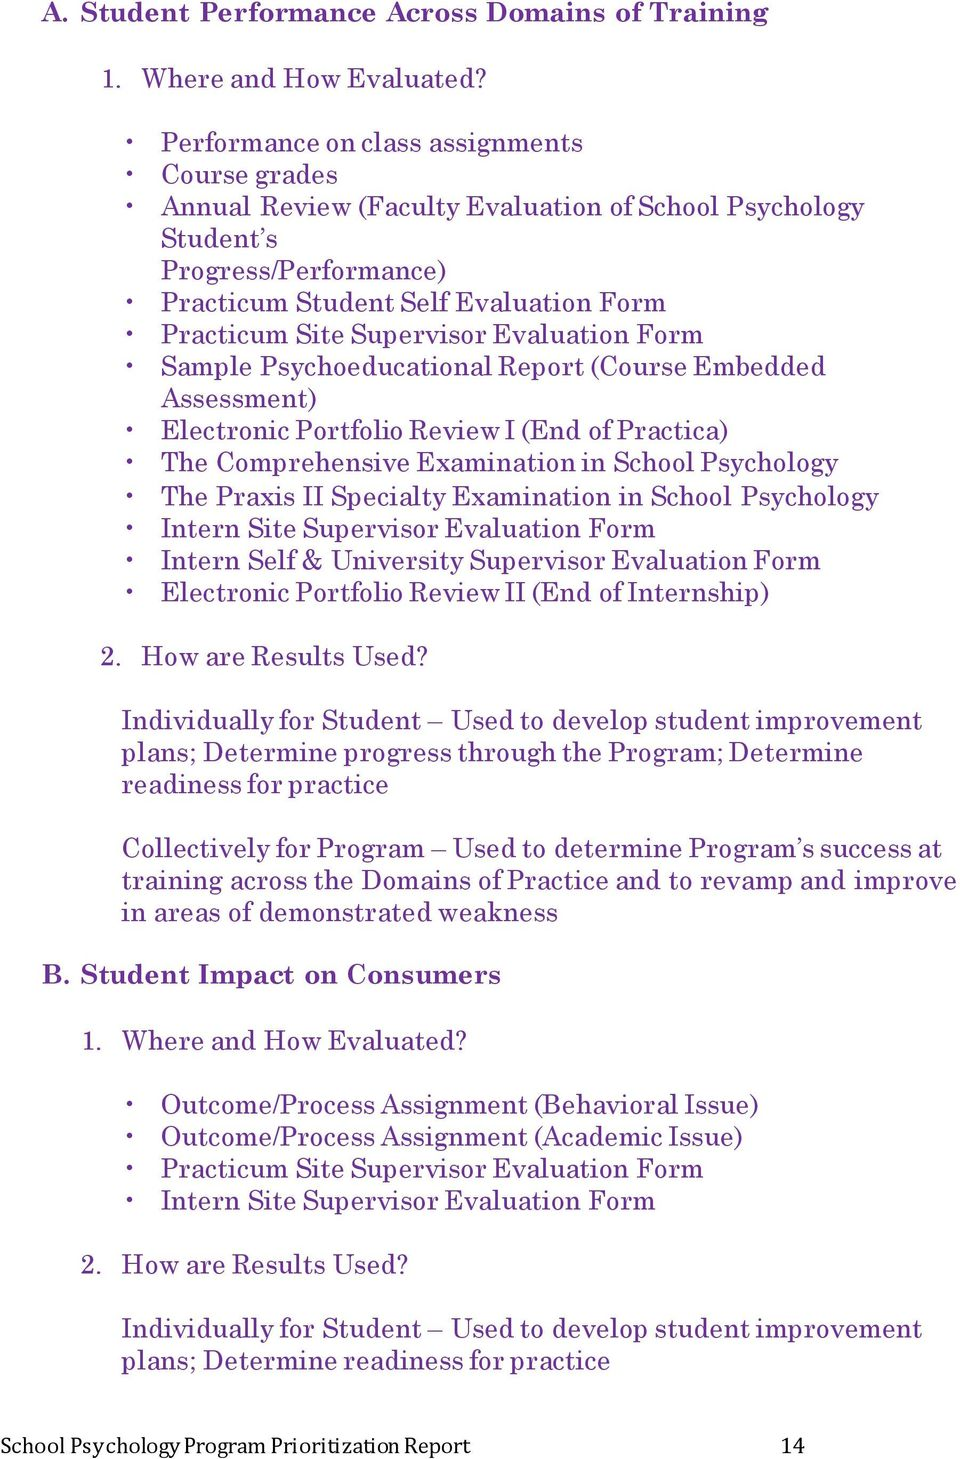 Evaluation Form Sample Psychoeducational Report (Course Embedded Assessment) Electronic Portfolio Review I (End of Practica) The Comprehensive Examination in School Psychology The Praxis II Specialty